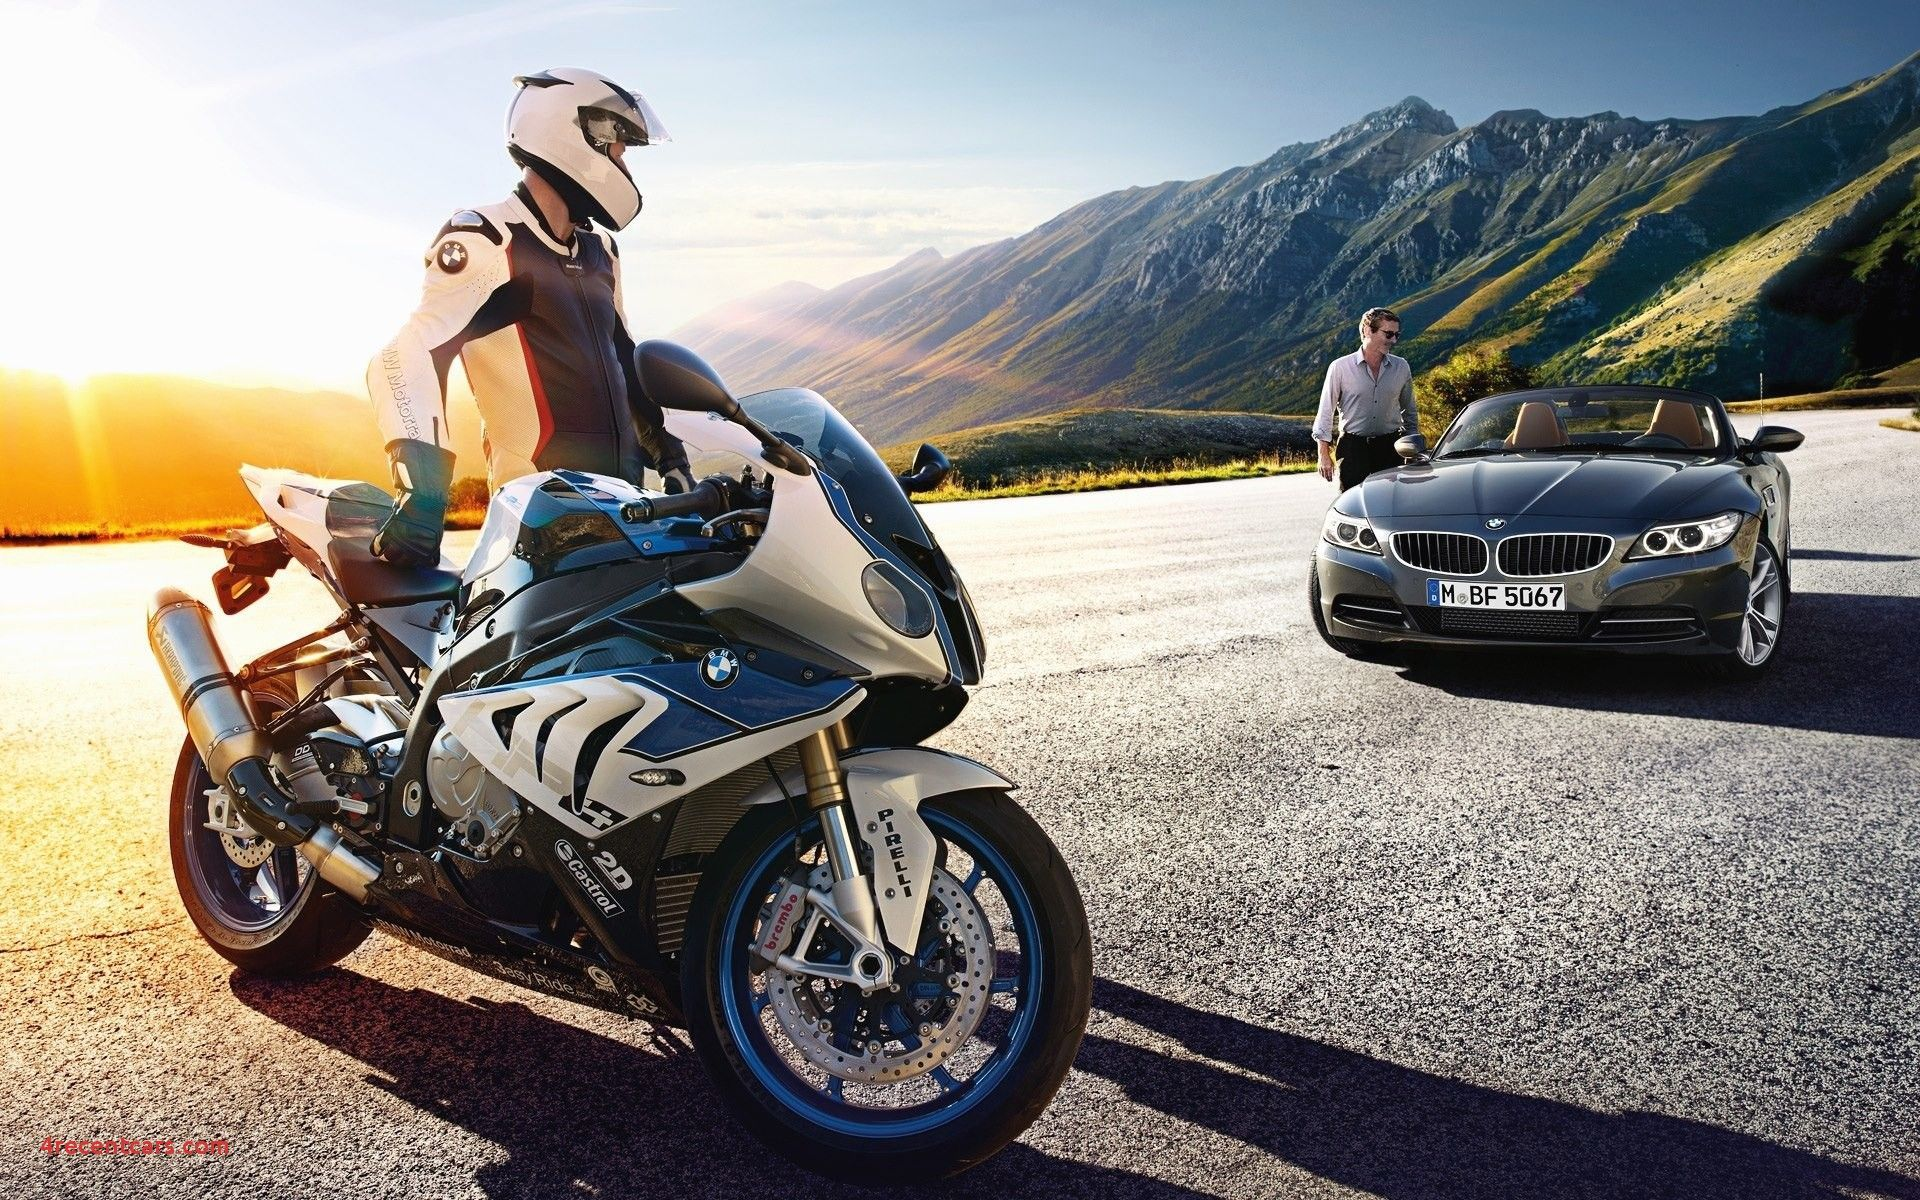 BMW Motorcycle Wallpapers   Top BMW Motorcycle Backgrounds 1920x1200